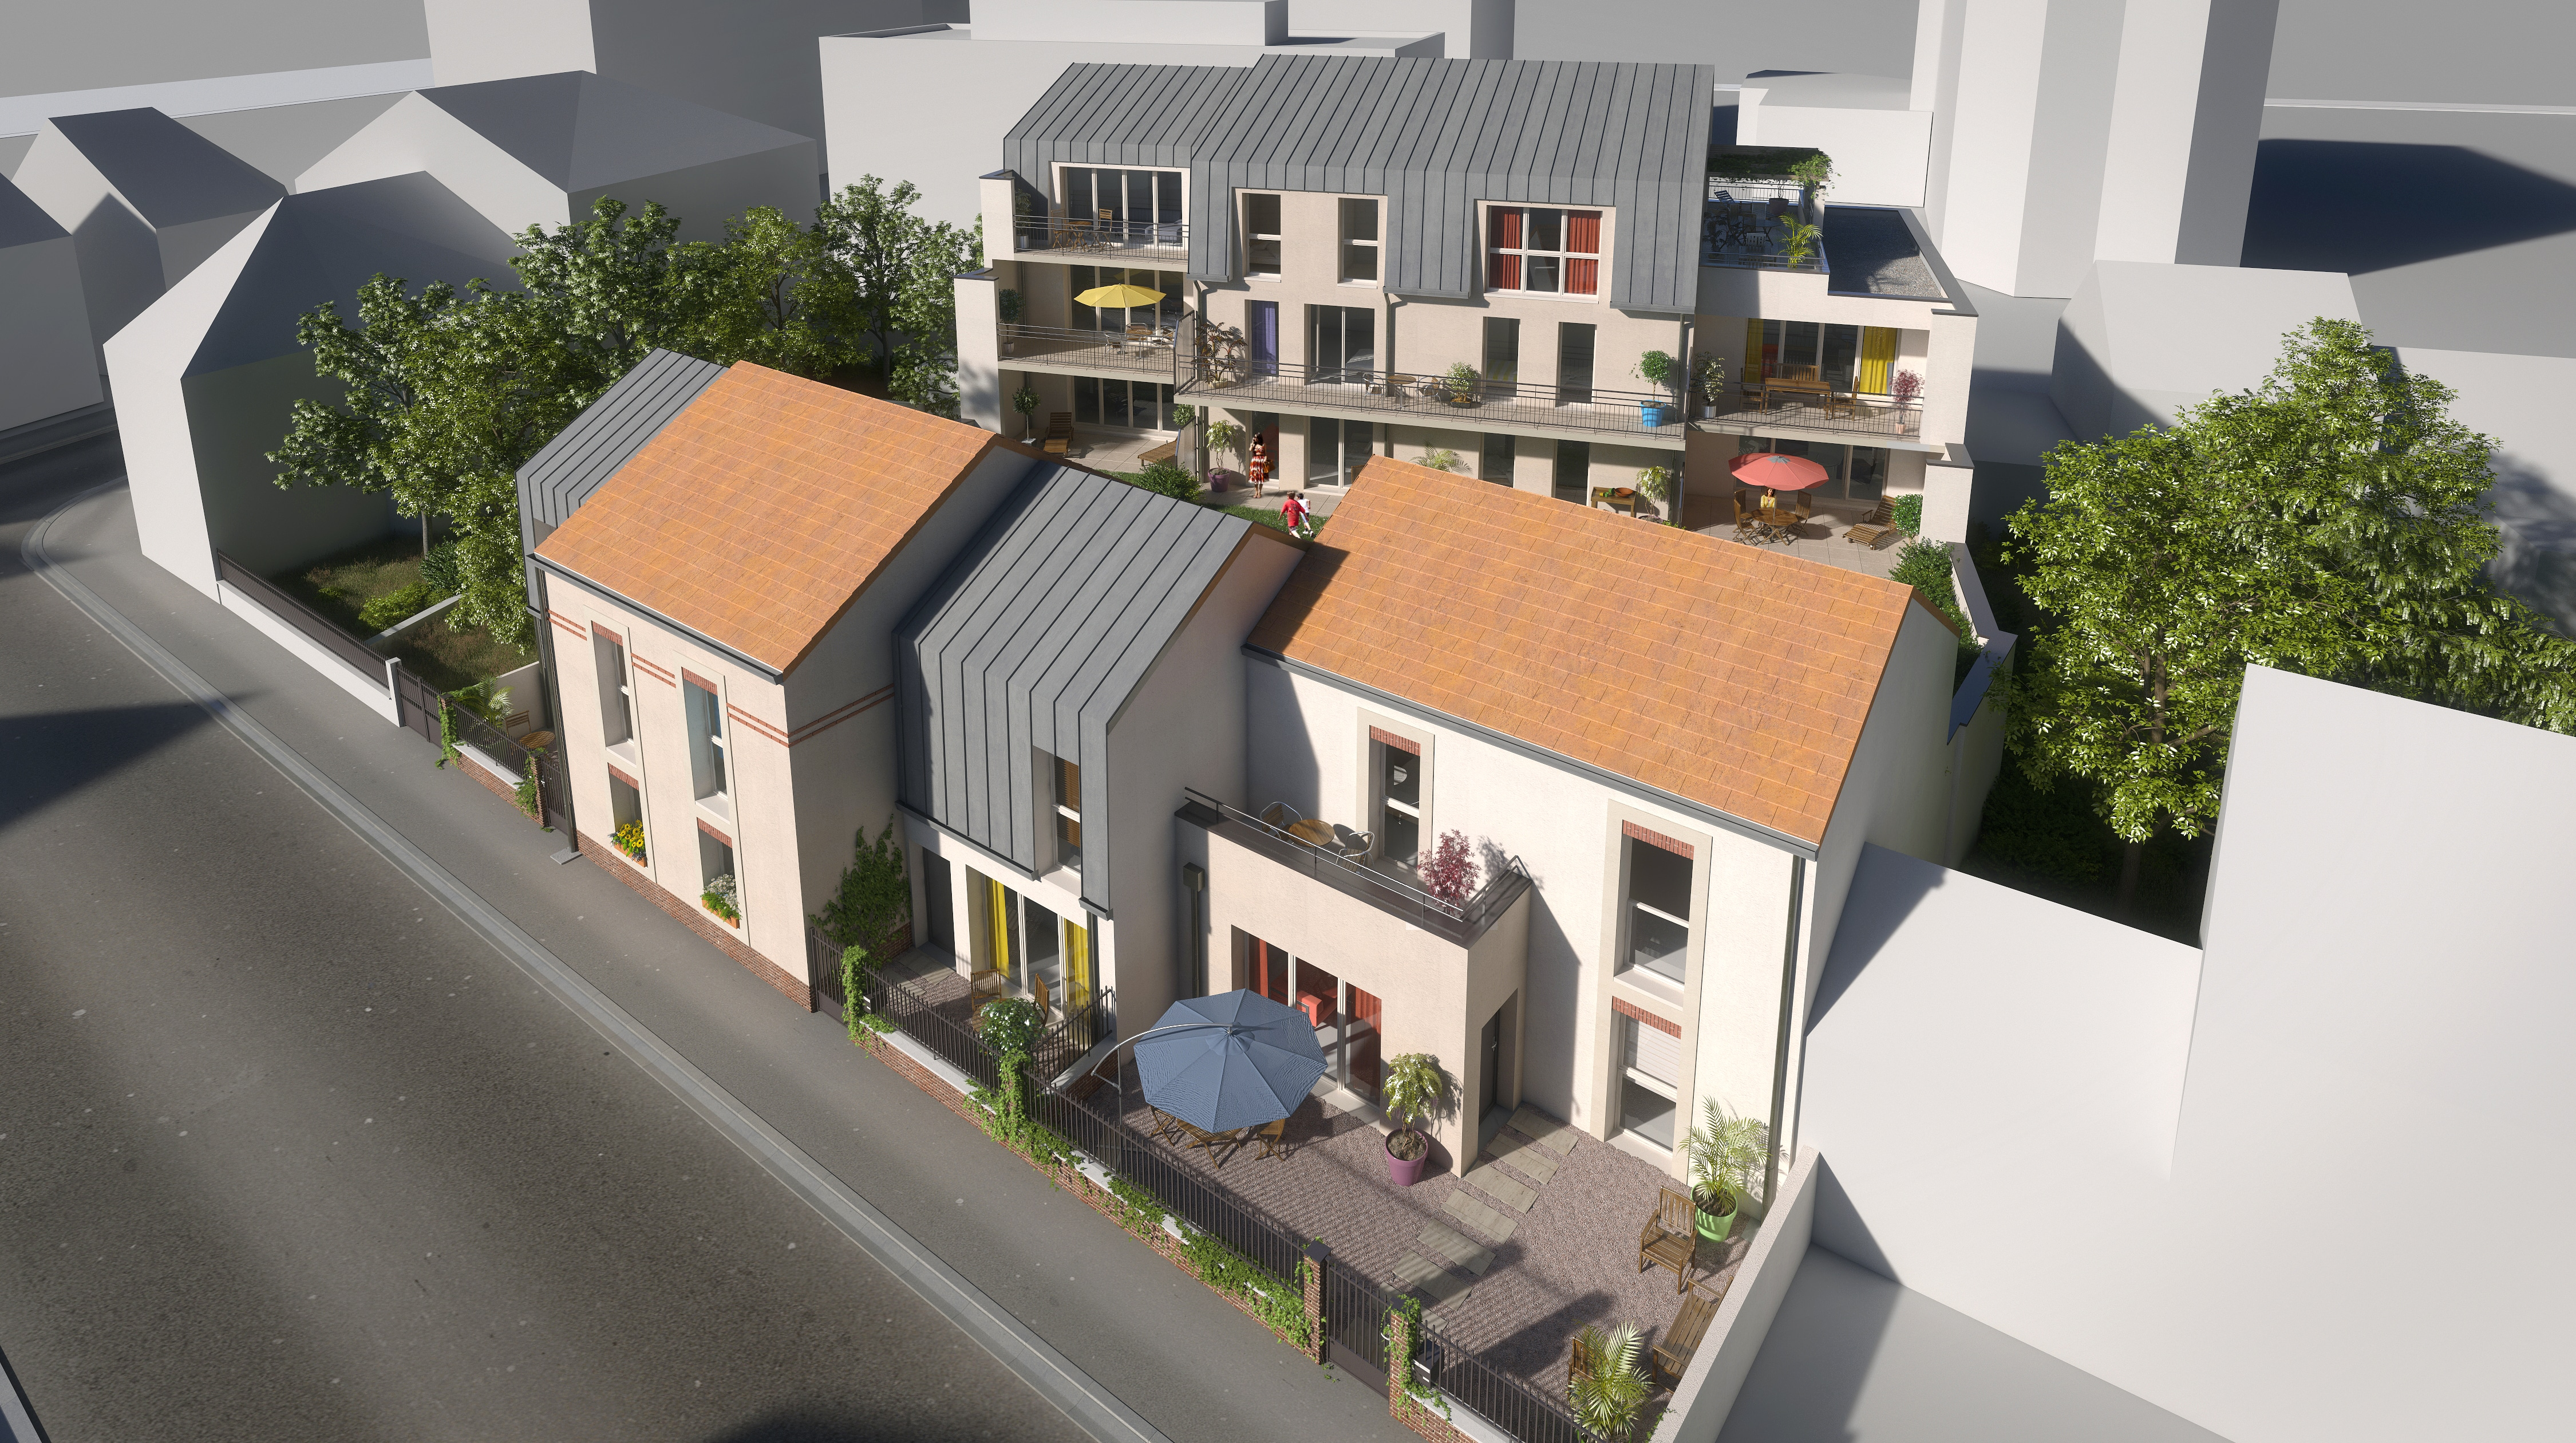 Programme immobilier neuf ORLEANS Orleans | Photo 1/3